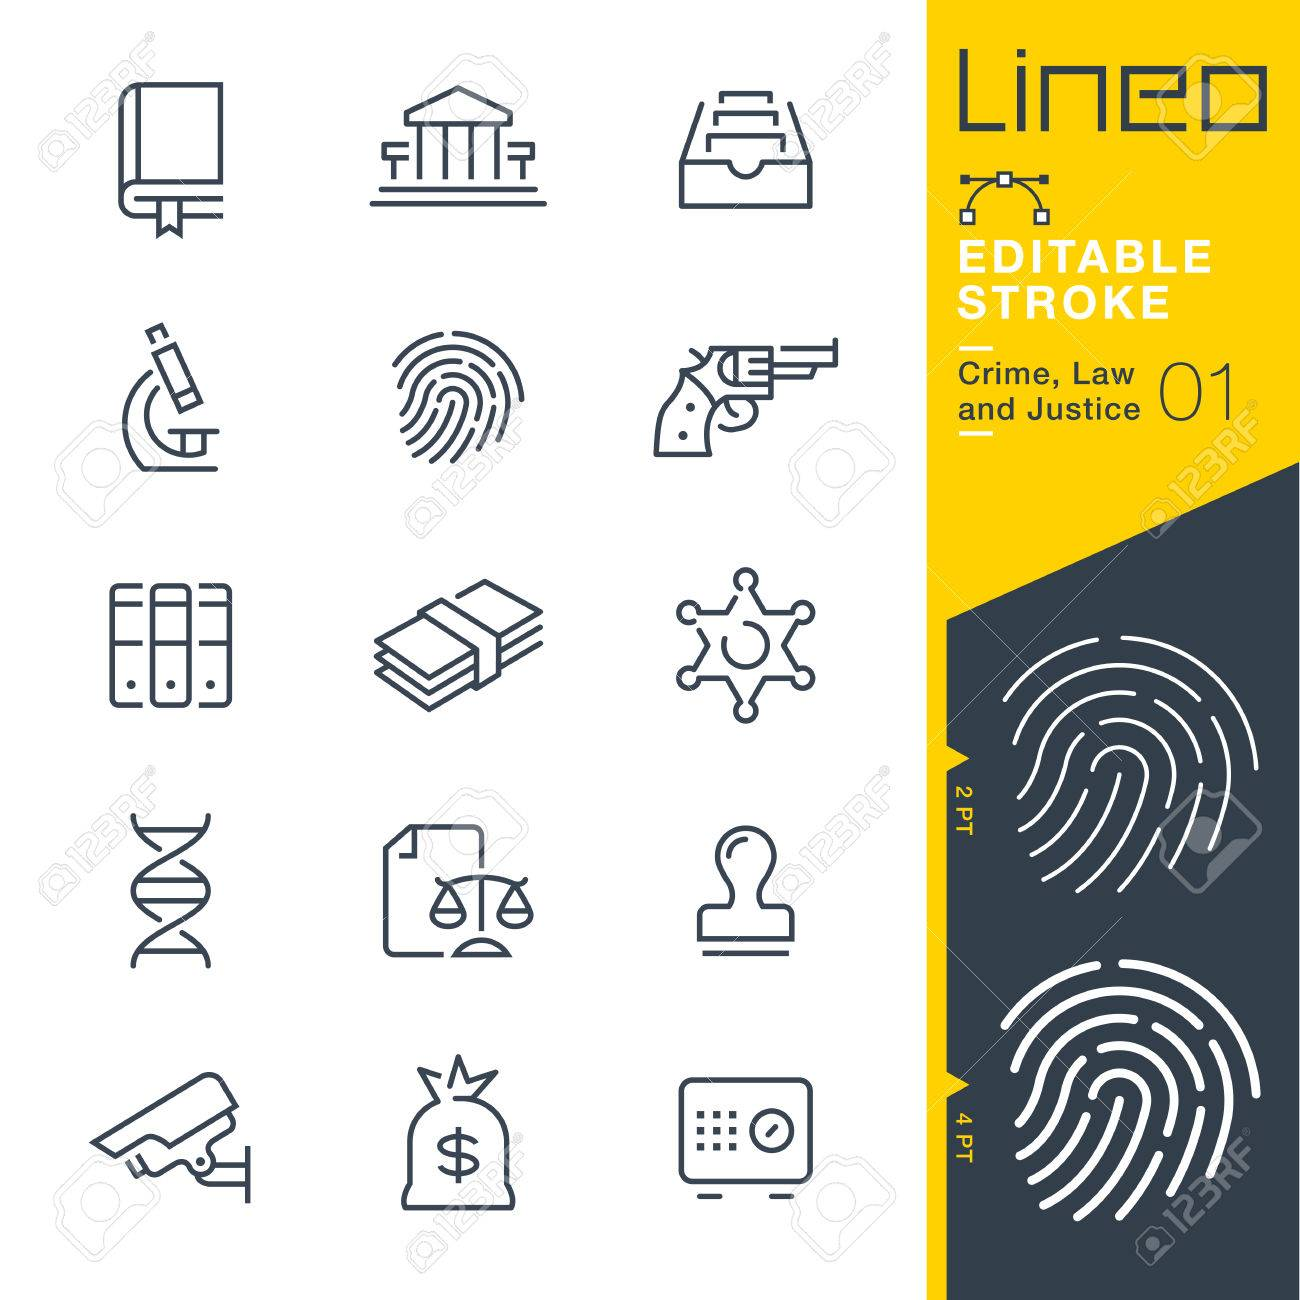 Lineo Editable Stroke - Crime, Law and Justice line icon Vector Icons - Adjust stroke weight - Change to any color - 87049477